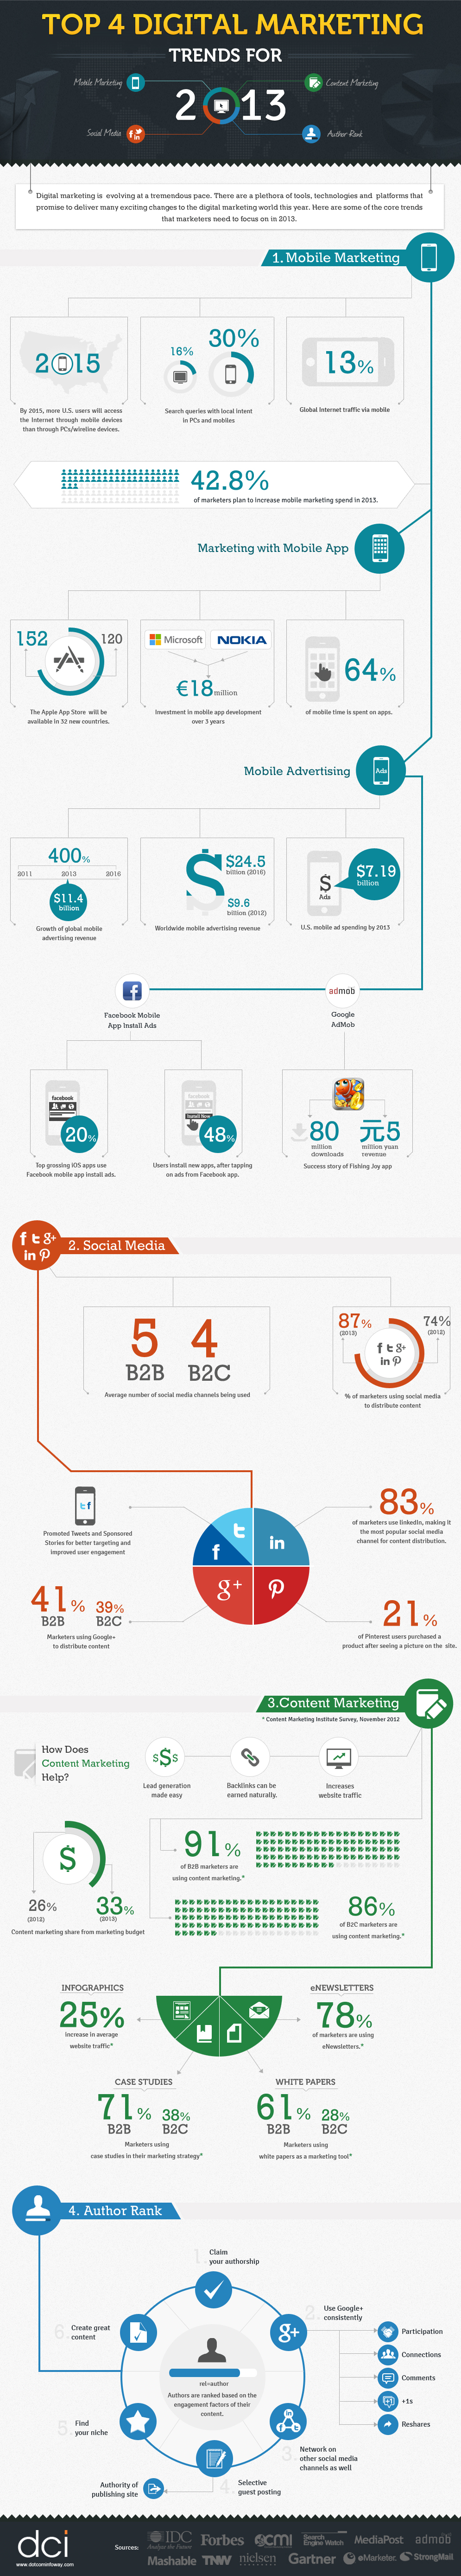 1digital-marketing-trends-2013-infographics